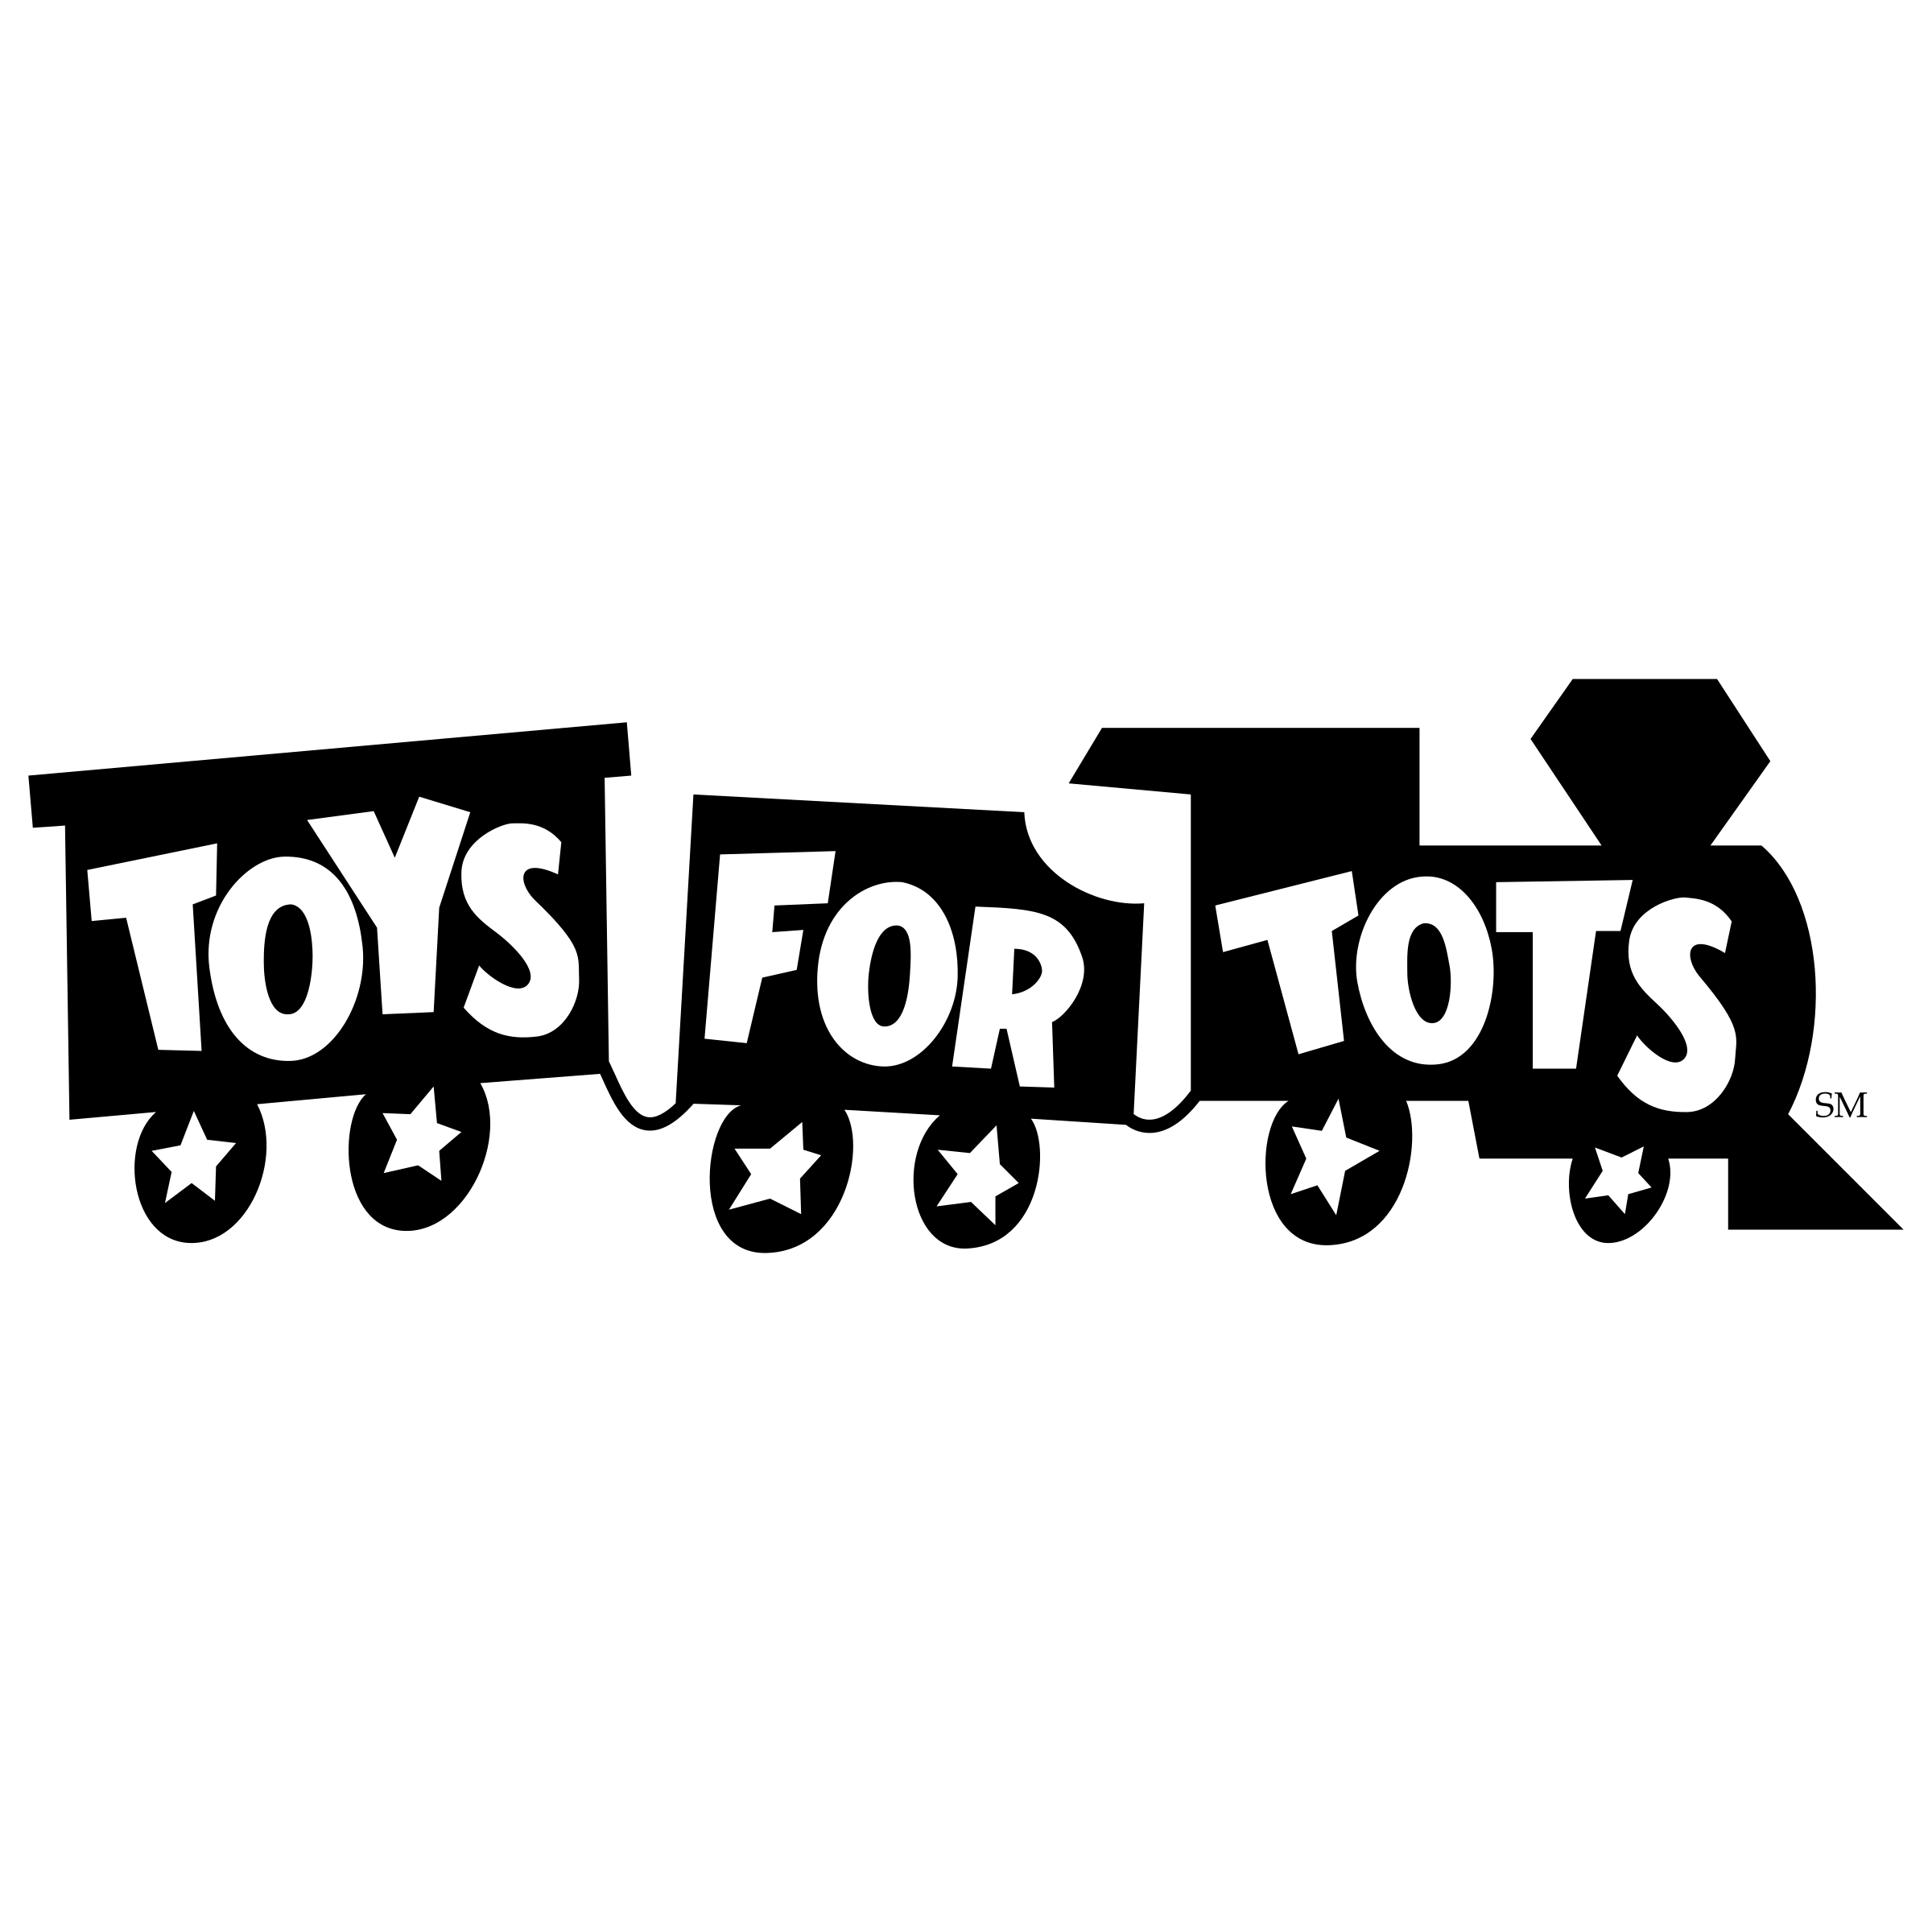 Toys For Tots Logo Eps : Toys for tots logo png transparent svg vector freebie